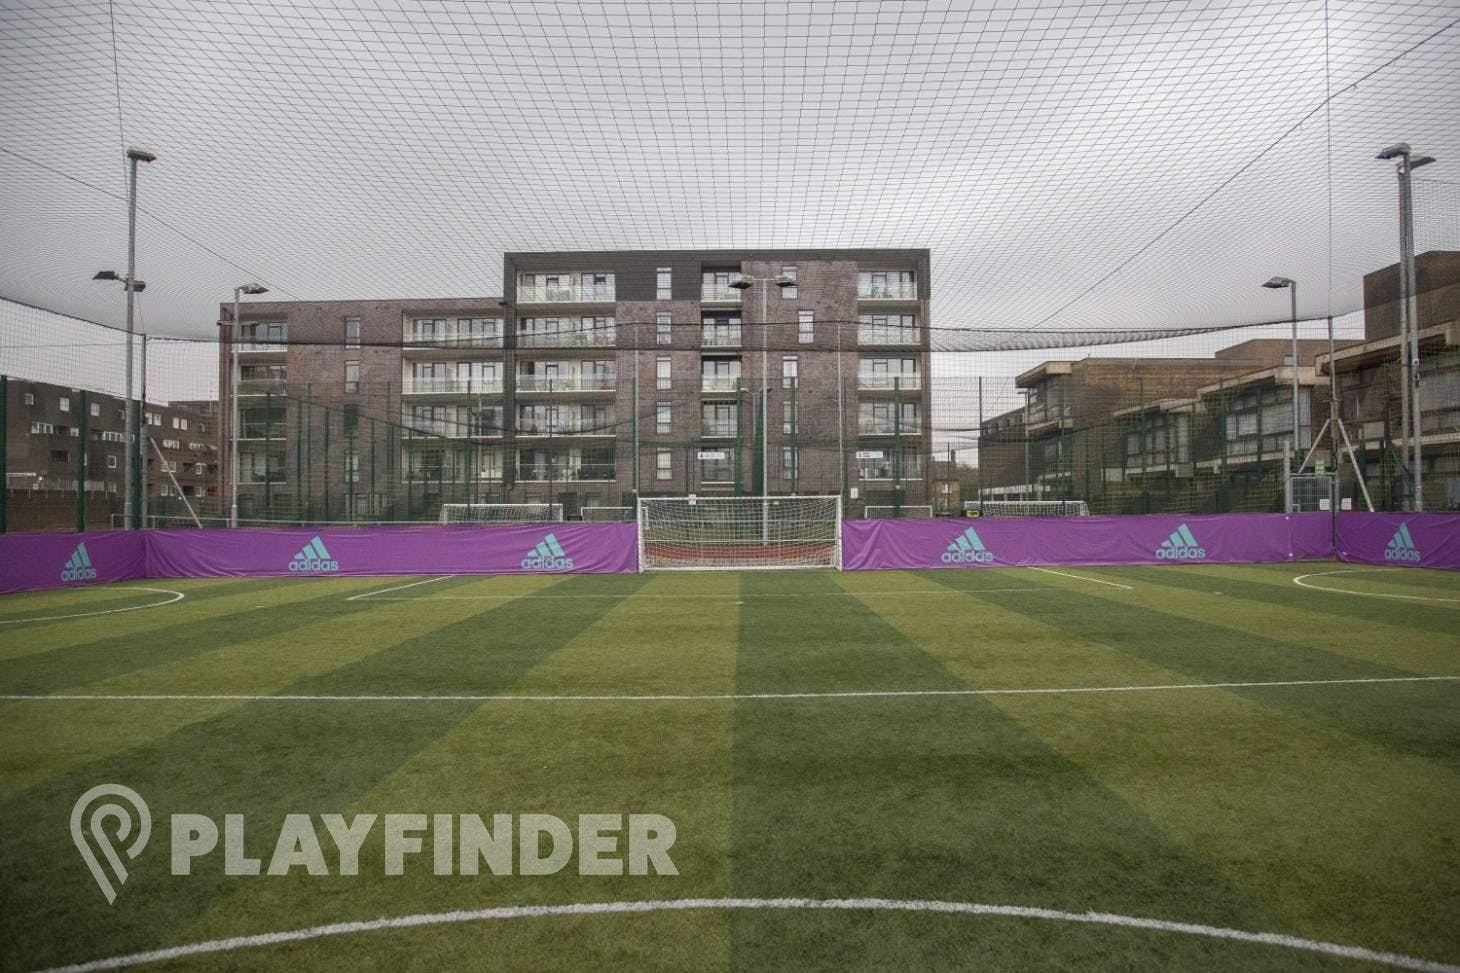 Powerleague Vauxhall 7 a side | 3G Astroturf football pitch